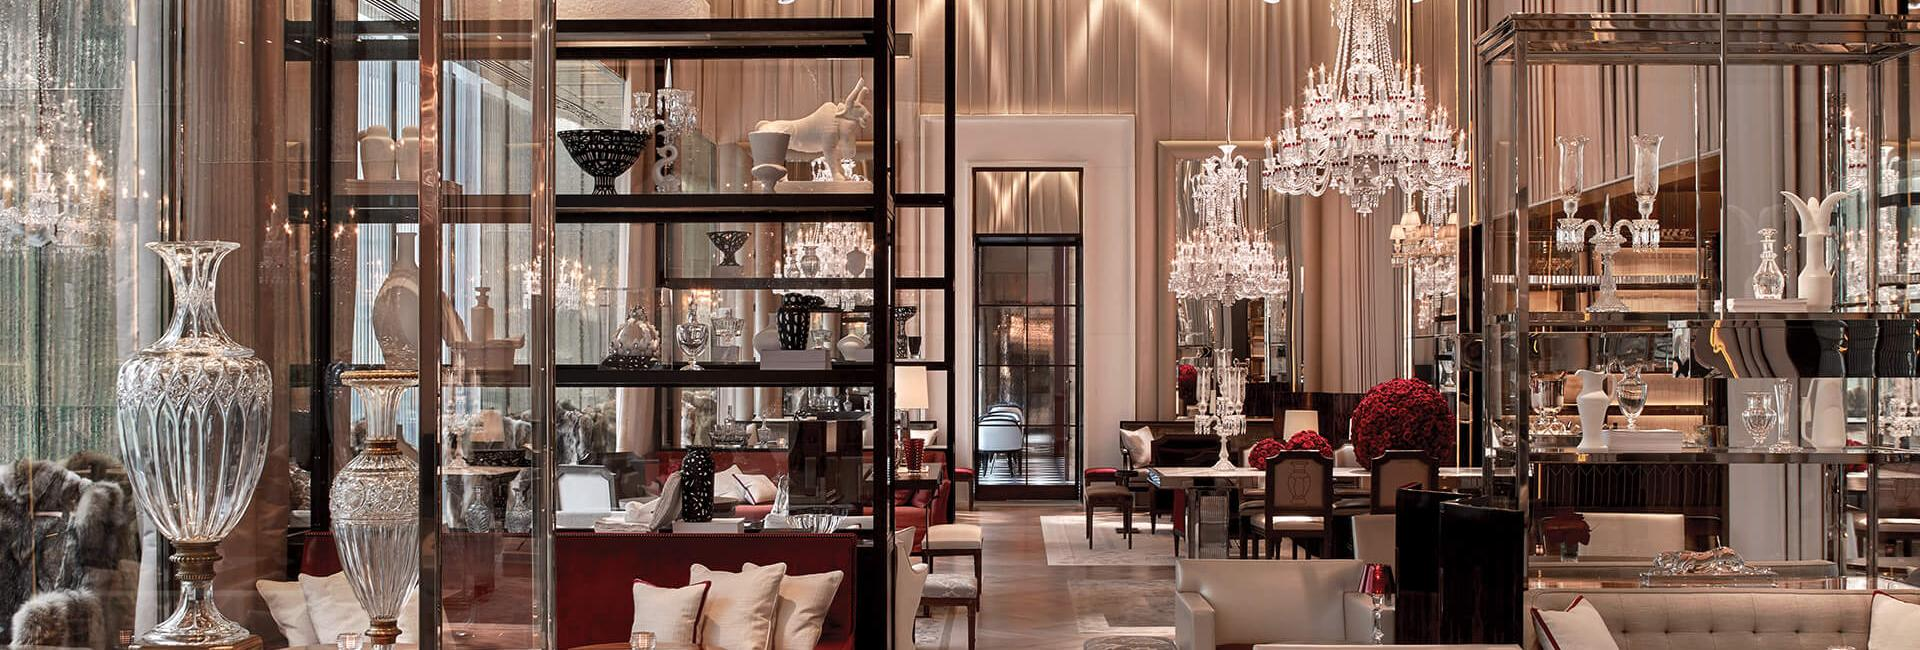 baccarat hotel nyc march 2015 grand salon - Baccarat Hotel